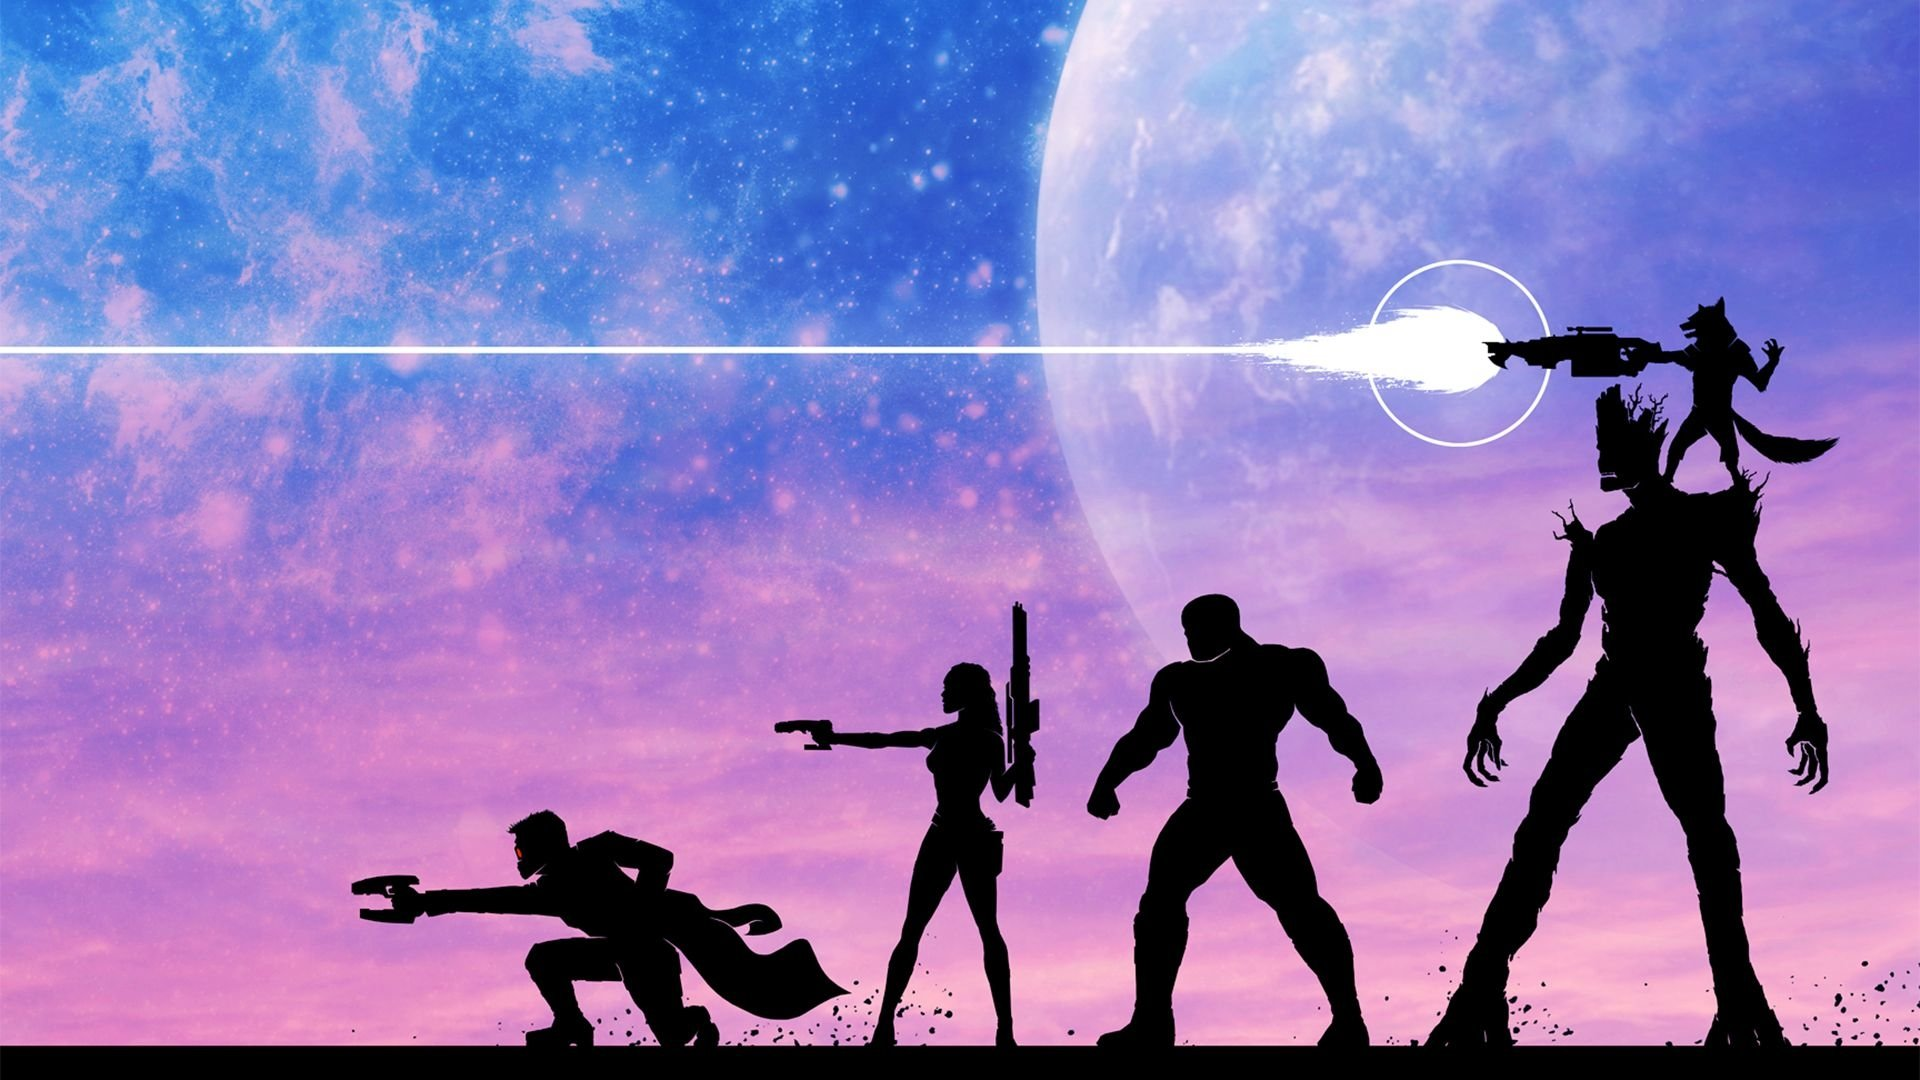 Comics - Guardians Of The Galaxy  Star Lord Gamora Drax The Destroyer Groot Peter Quill Rocket Raccoon Wallpaper